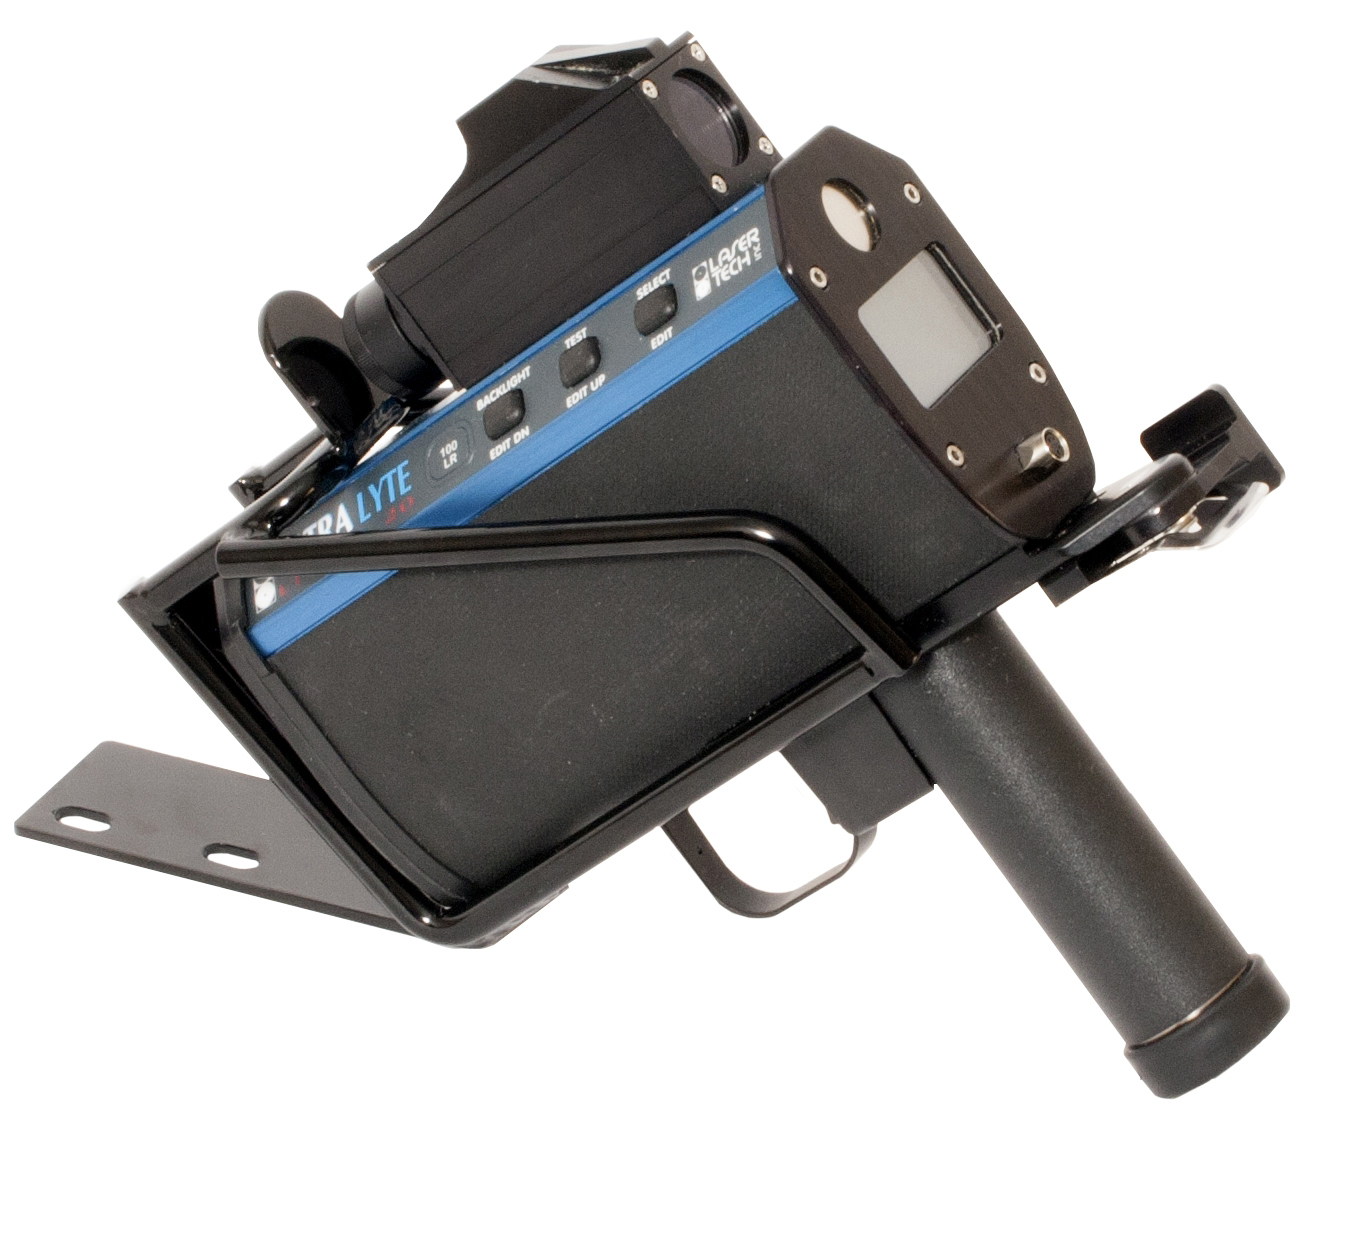 Holster Picture